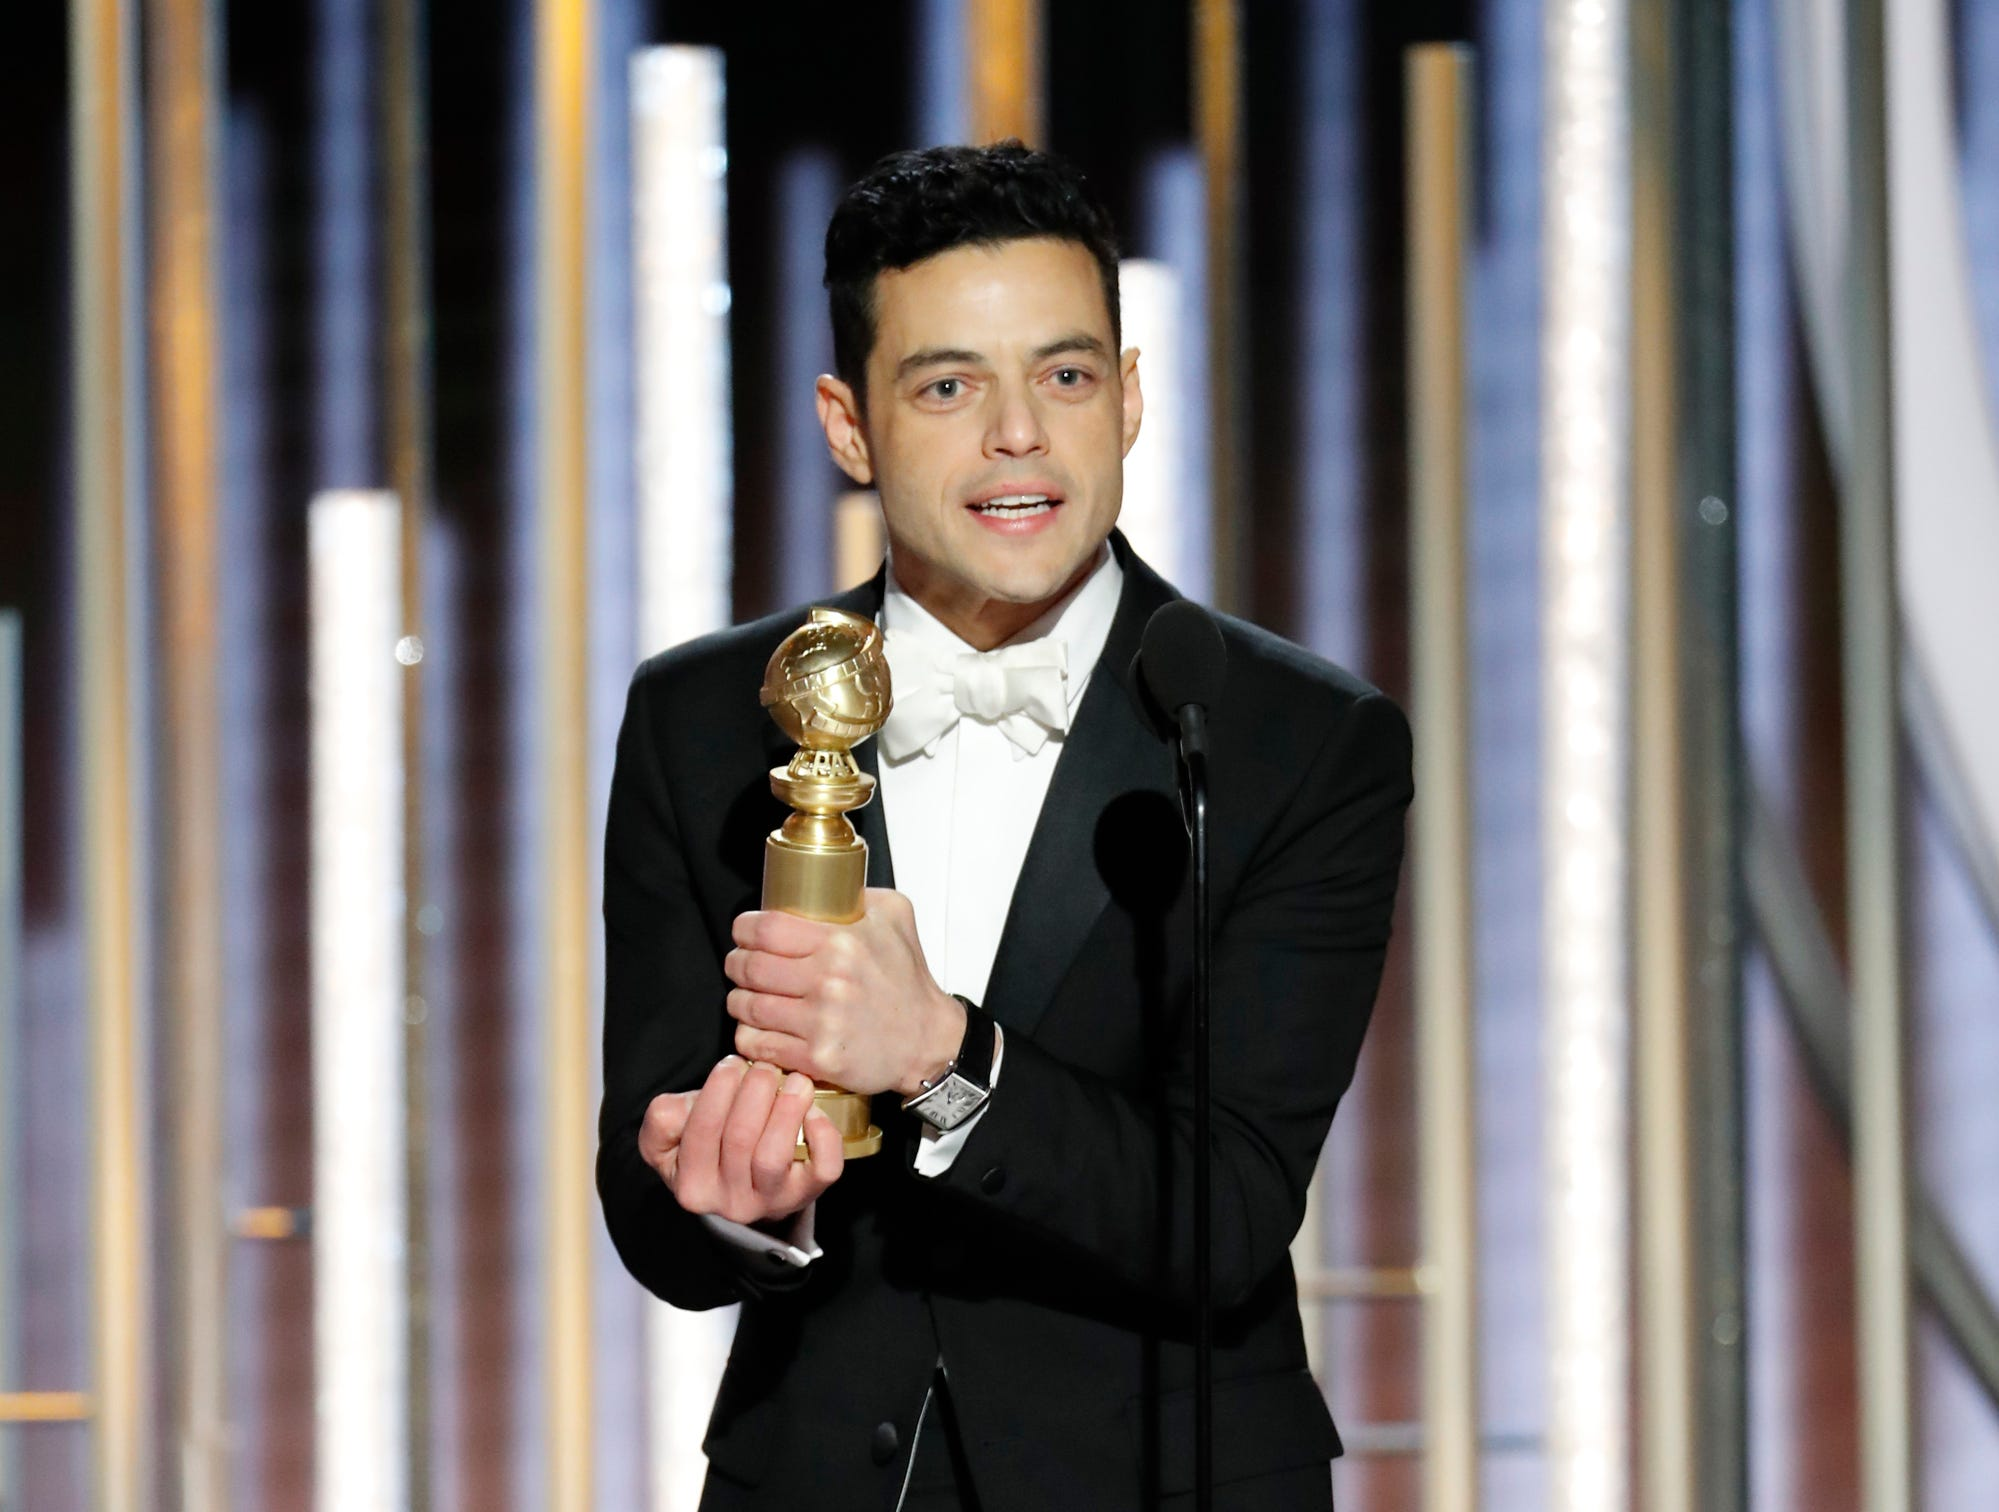 "This image released by NBC shows Rami Malek accepting the award for best actor in a motion picture drama for his role as Freddie Mercury in a scene from ""Bohemian Rhapsody"" during the 76th Annual Golden Globe Awards at the Beverly Hilton Hotel on Sunday, Jan. 6, 2019, in Beverly Hills, Calif."